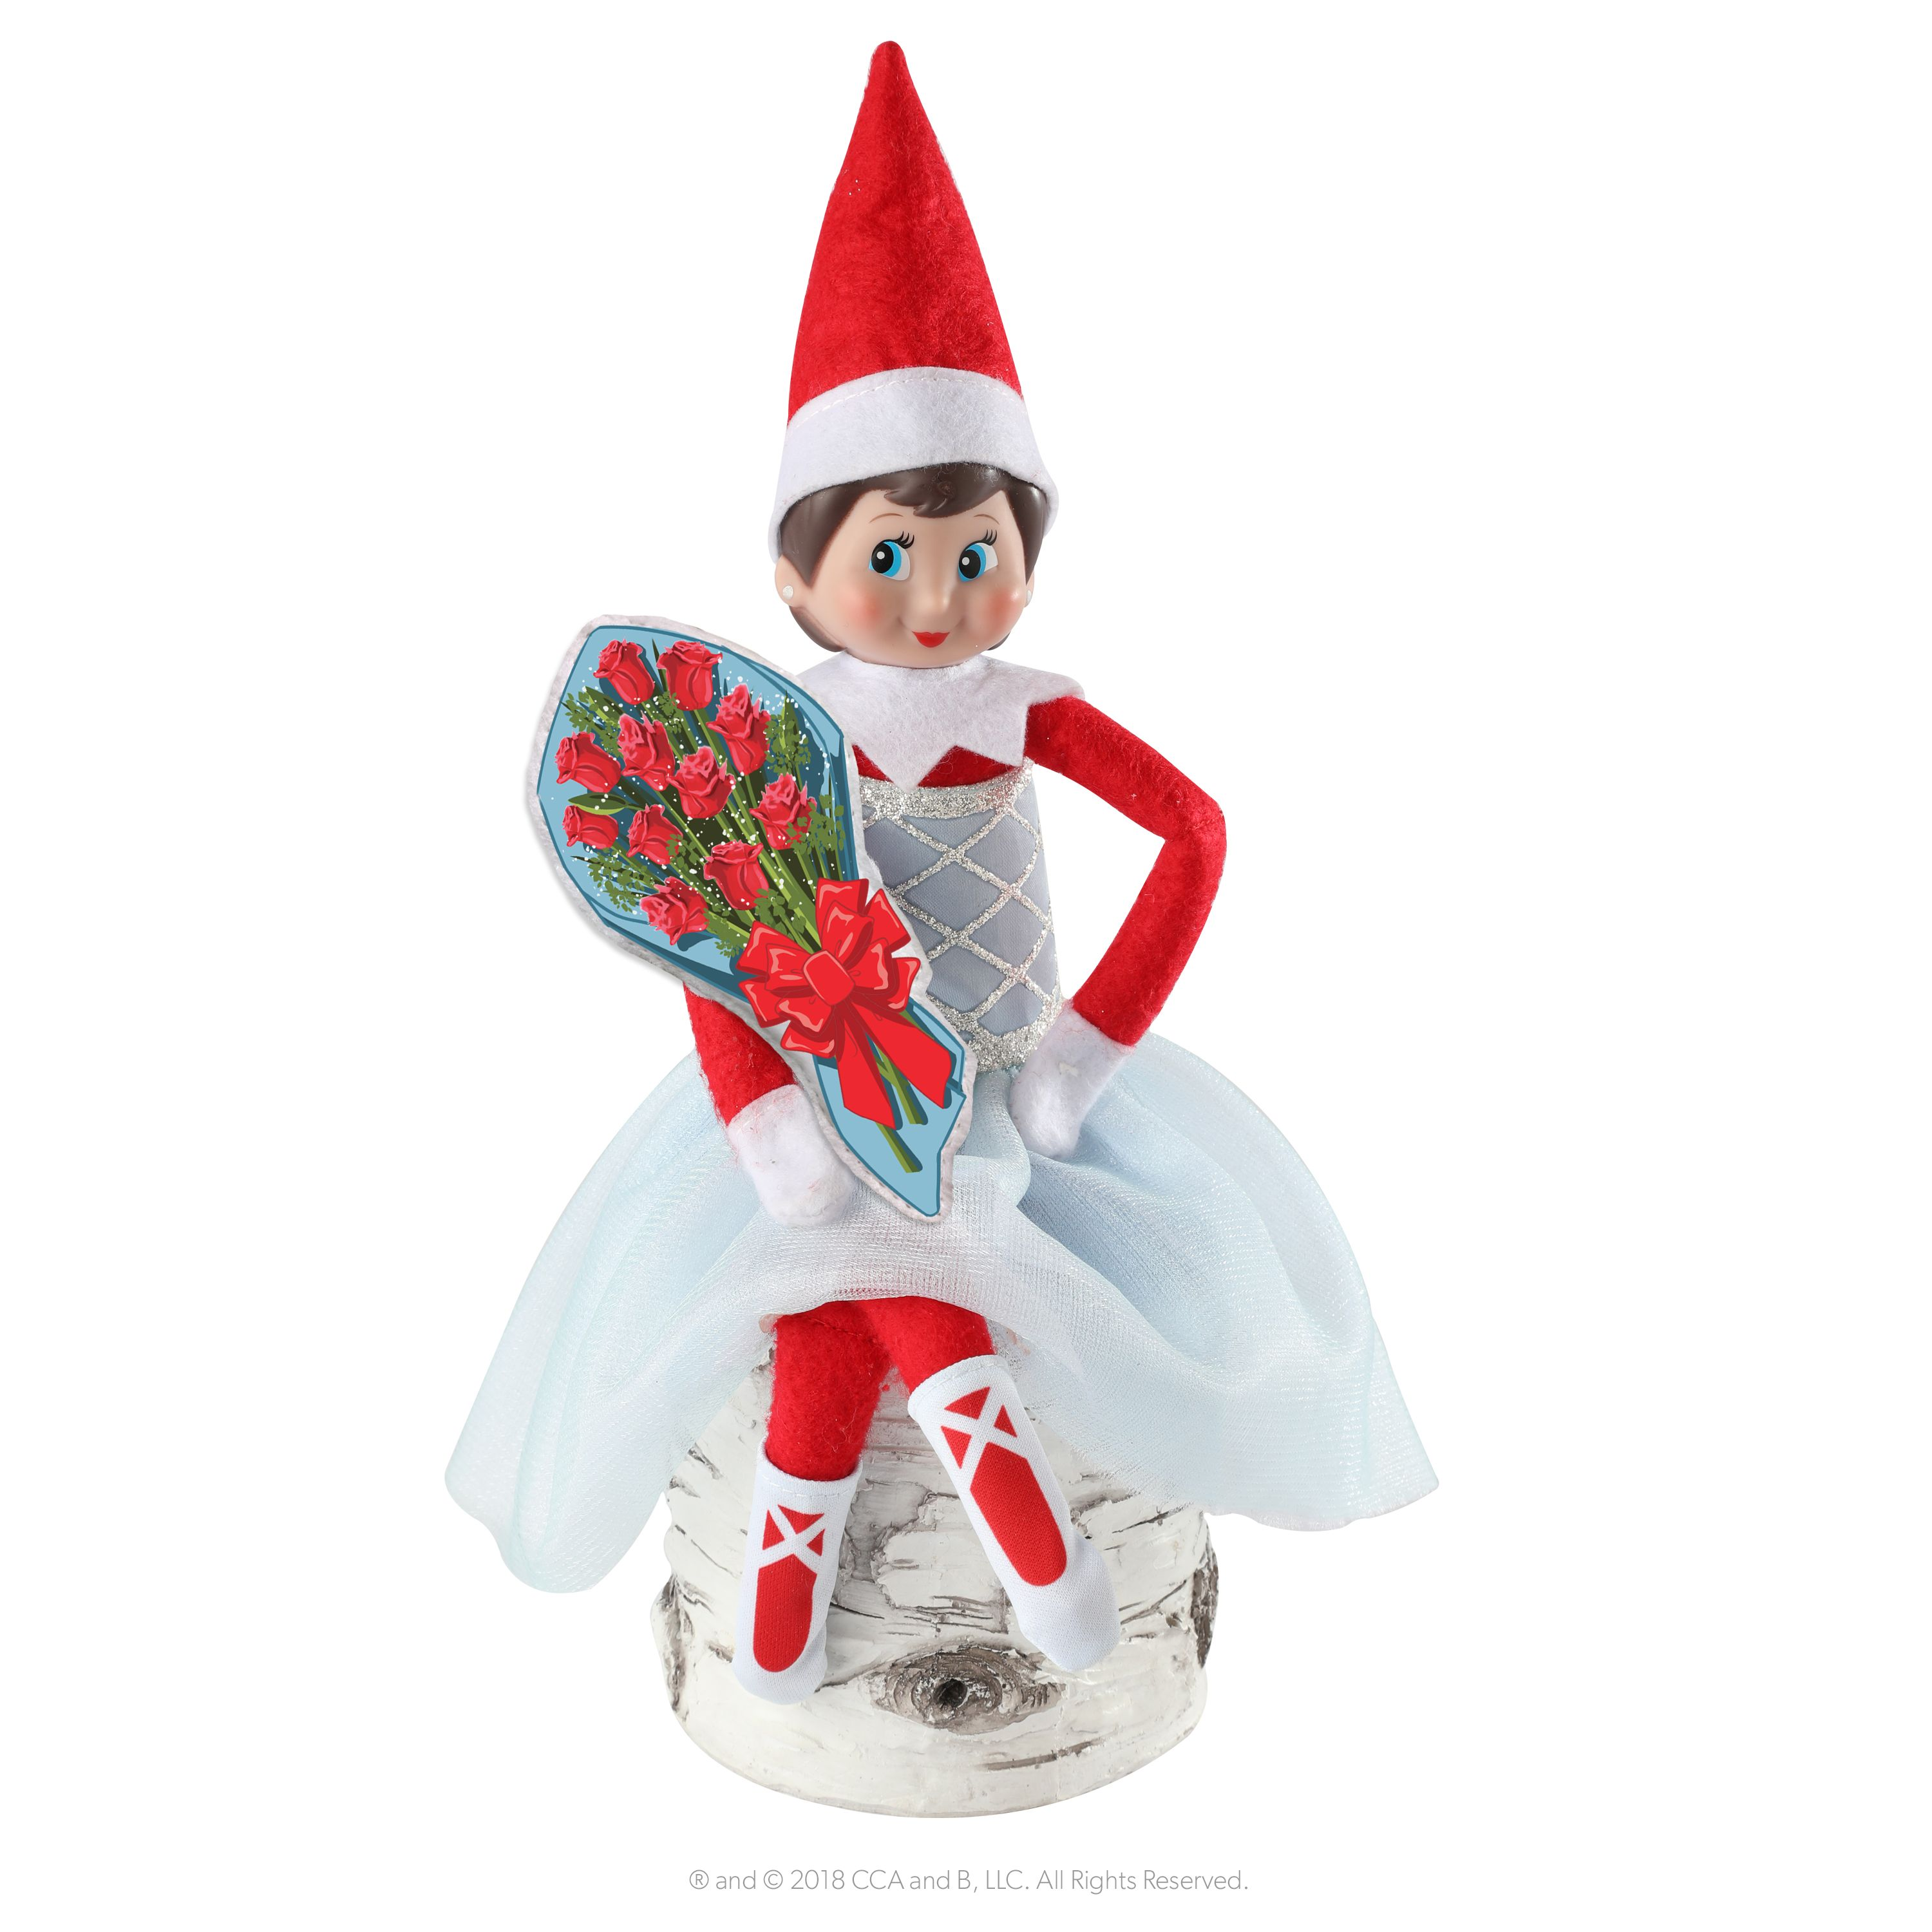 36 Best Elf On The Shelf Clothes 2020 Elf On The Shelf Outfits And Accessories